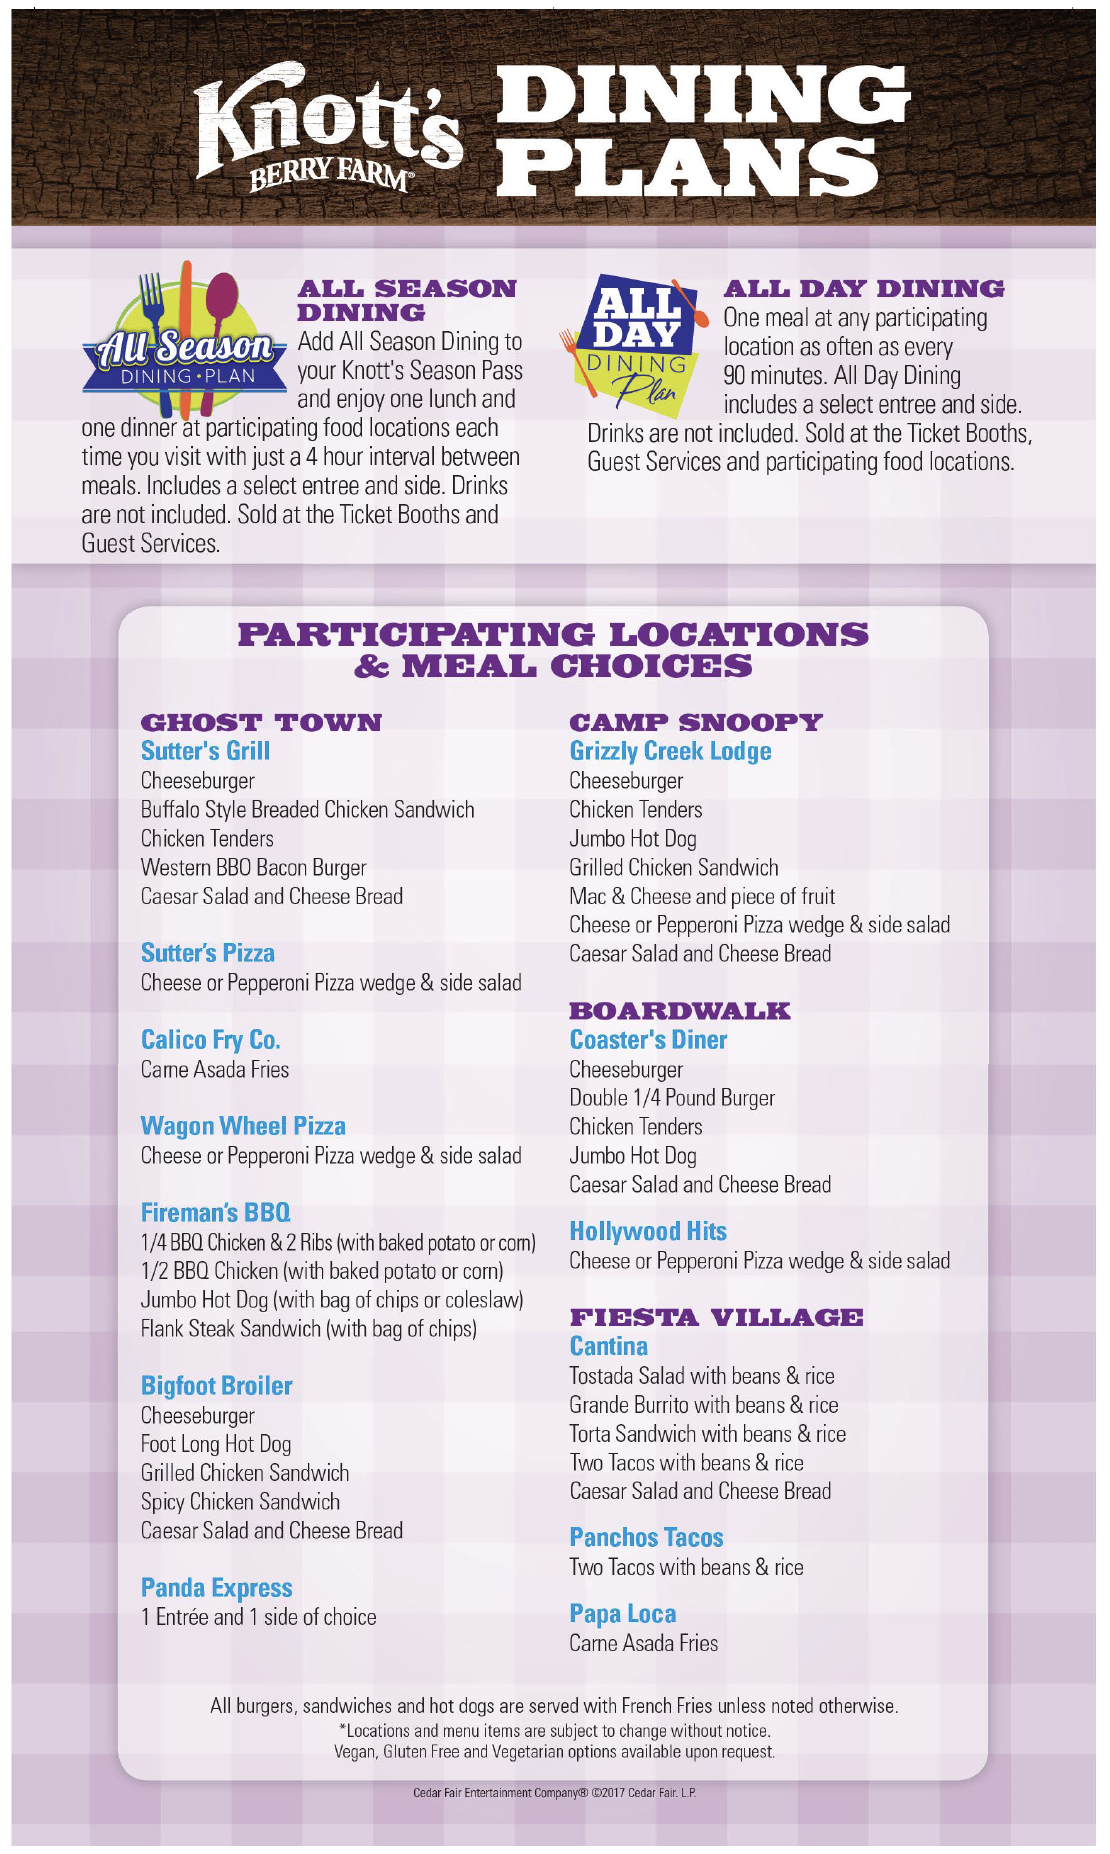 knotts-berry-farm-dining-plan-locations-and-menu-items-spring-2017